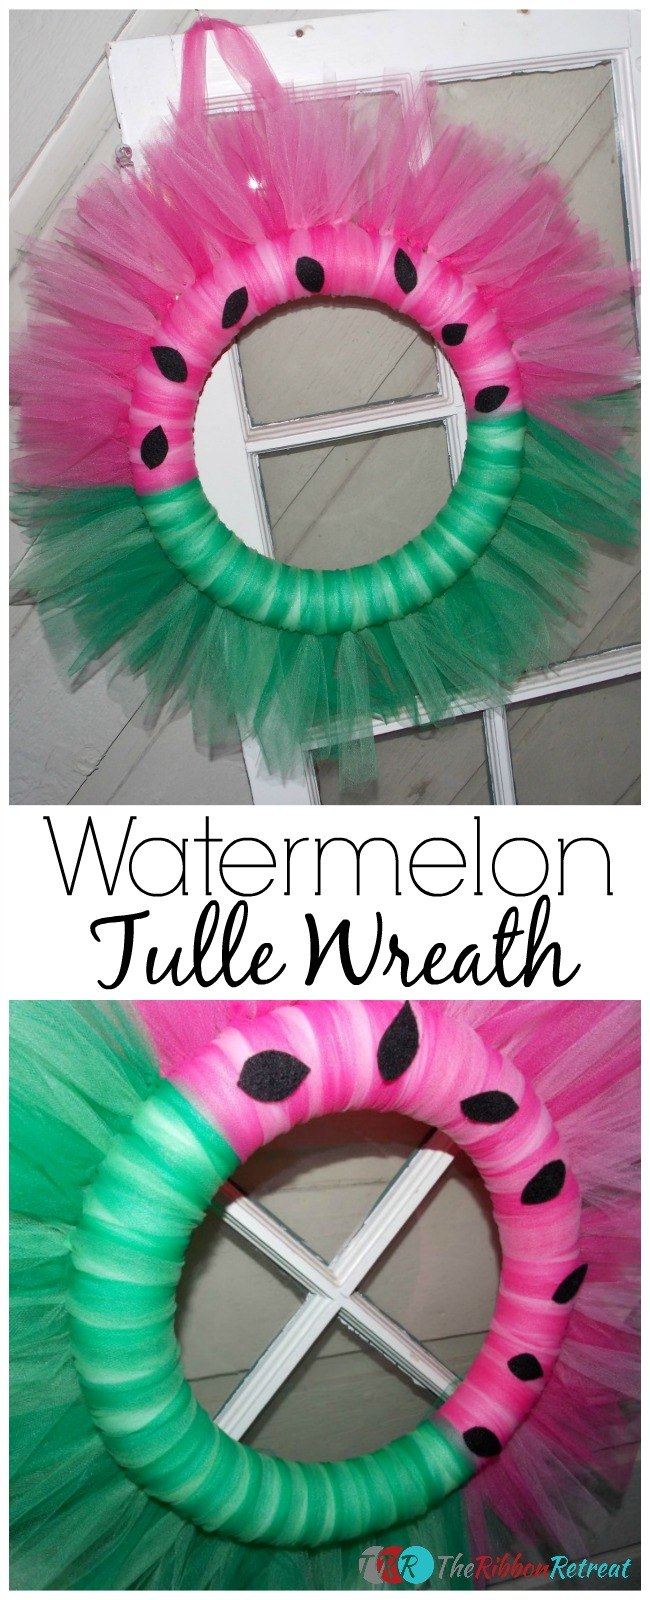 Watermelon Tulle Wreath - The Ribbon Retreat Blog